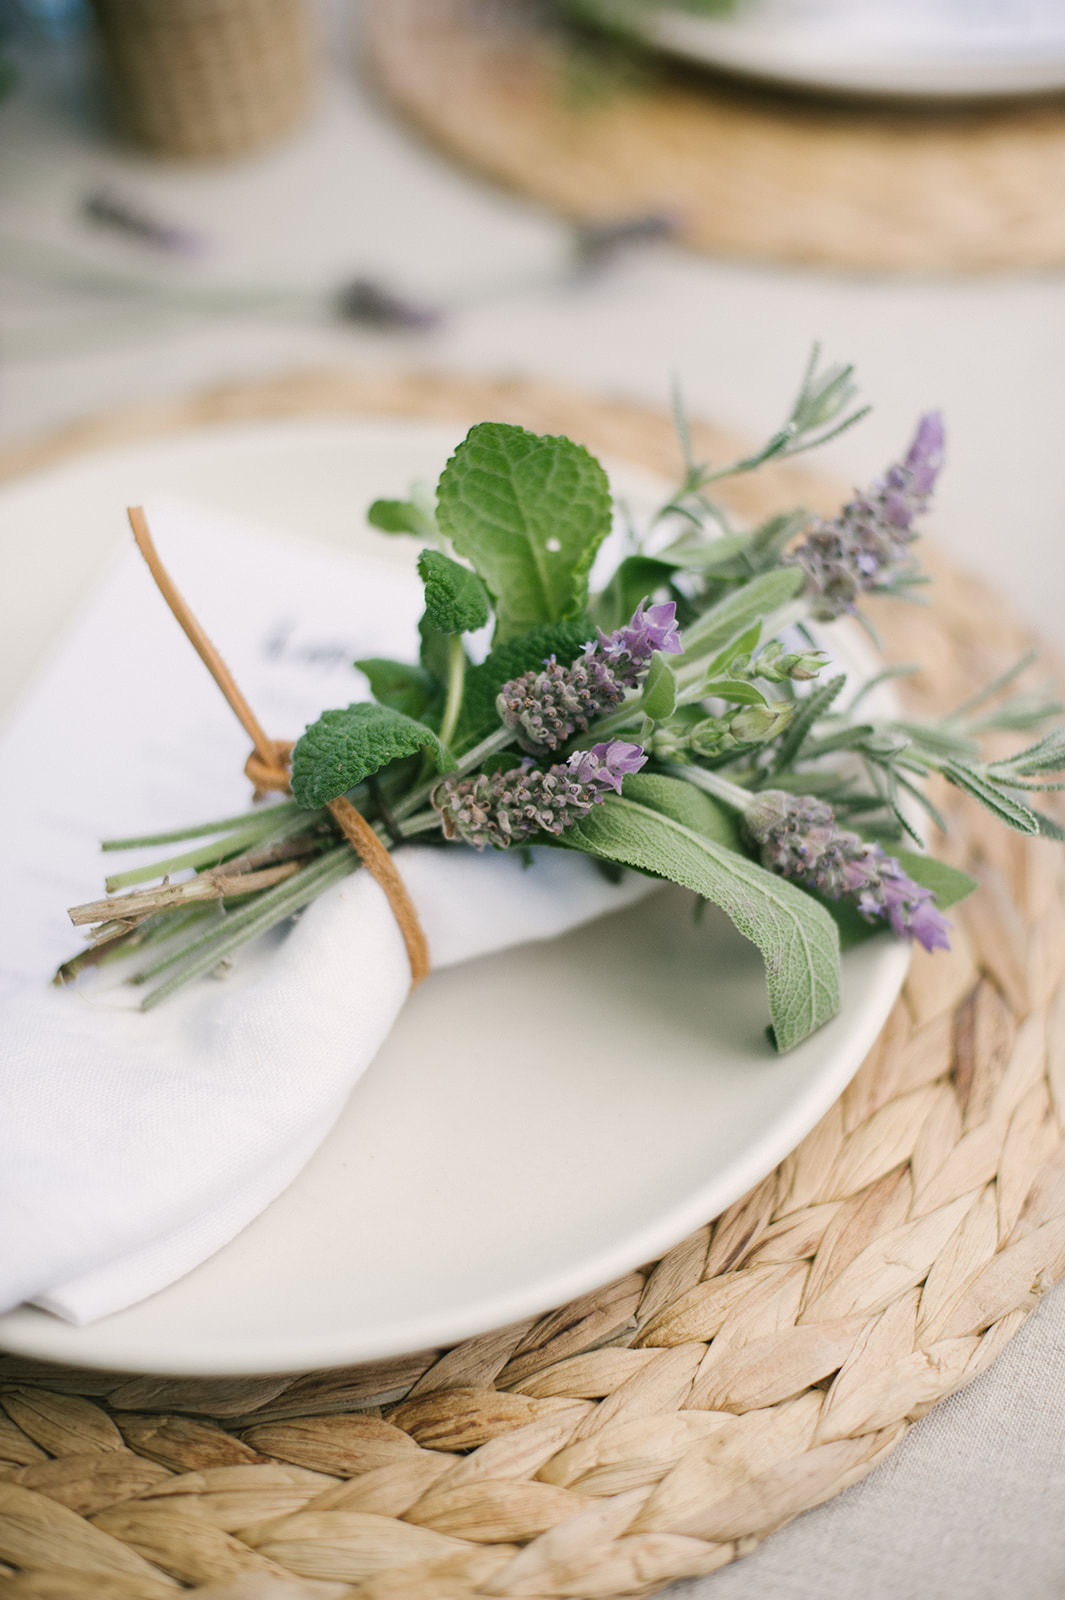 Bundle of herbs as table setting idea for #entertaining by Jenni Kayne